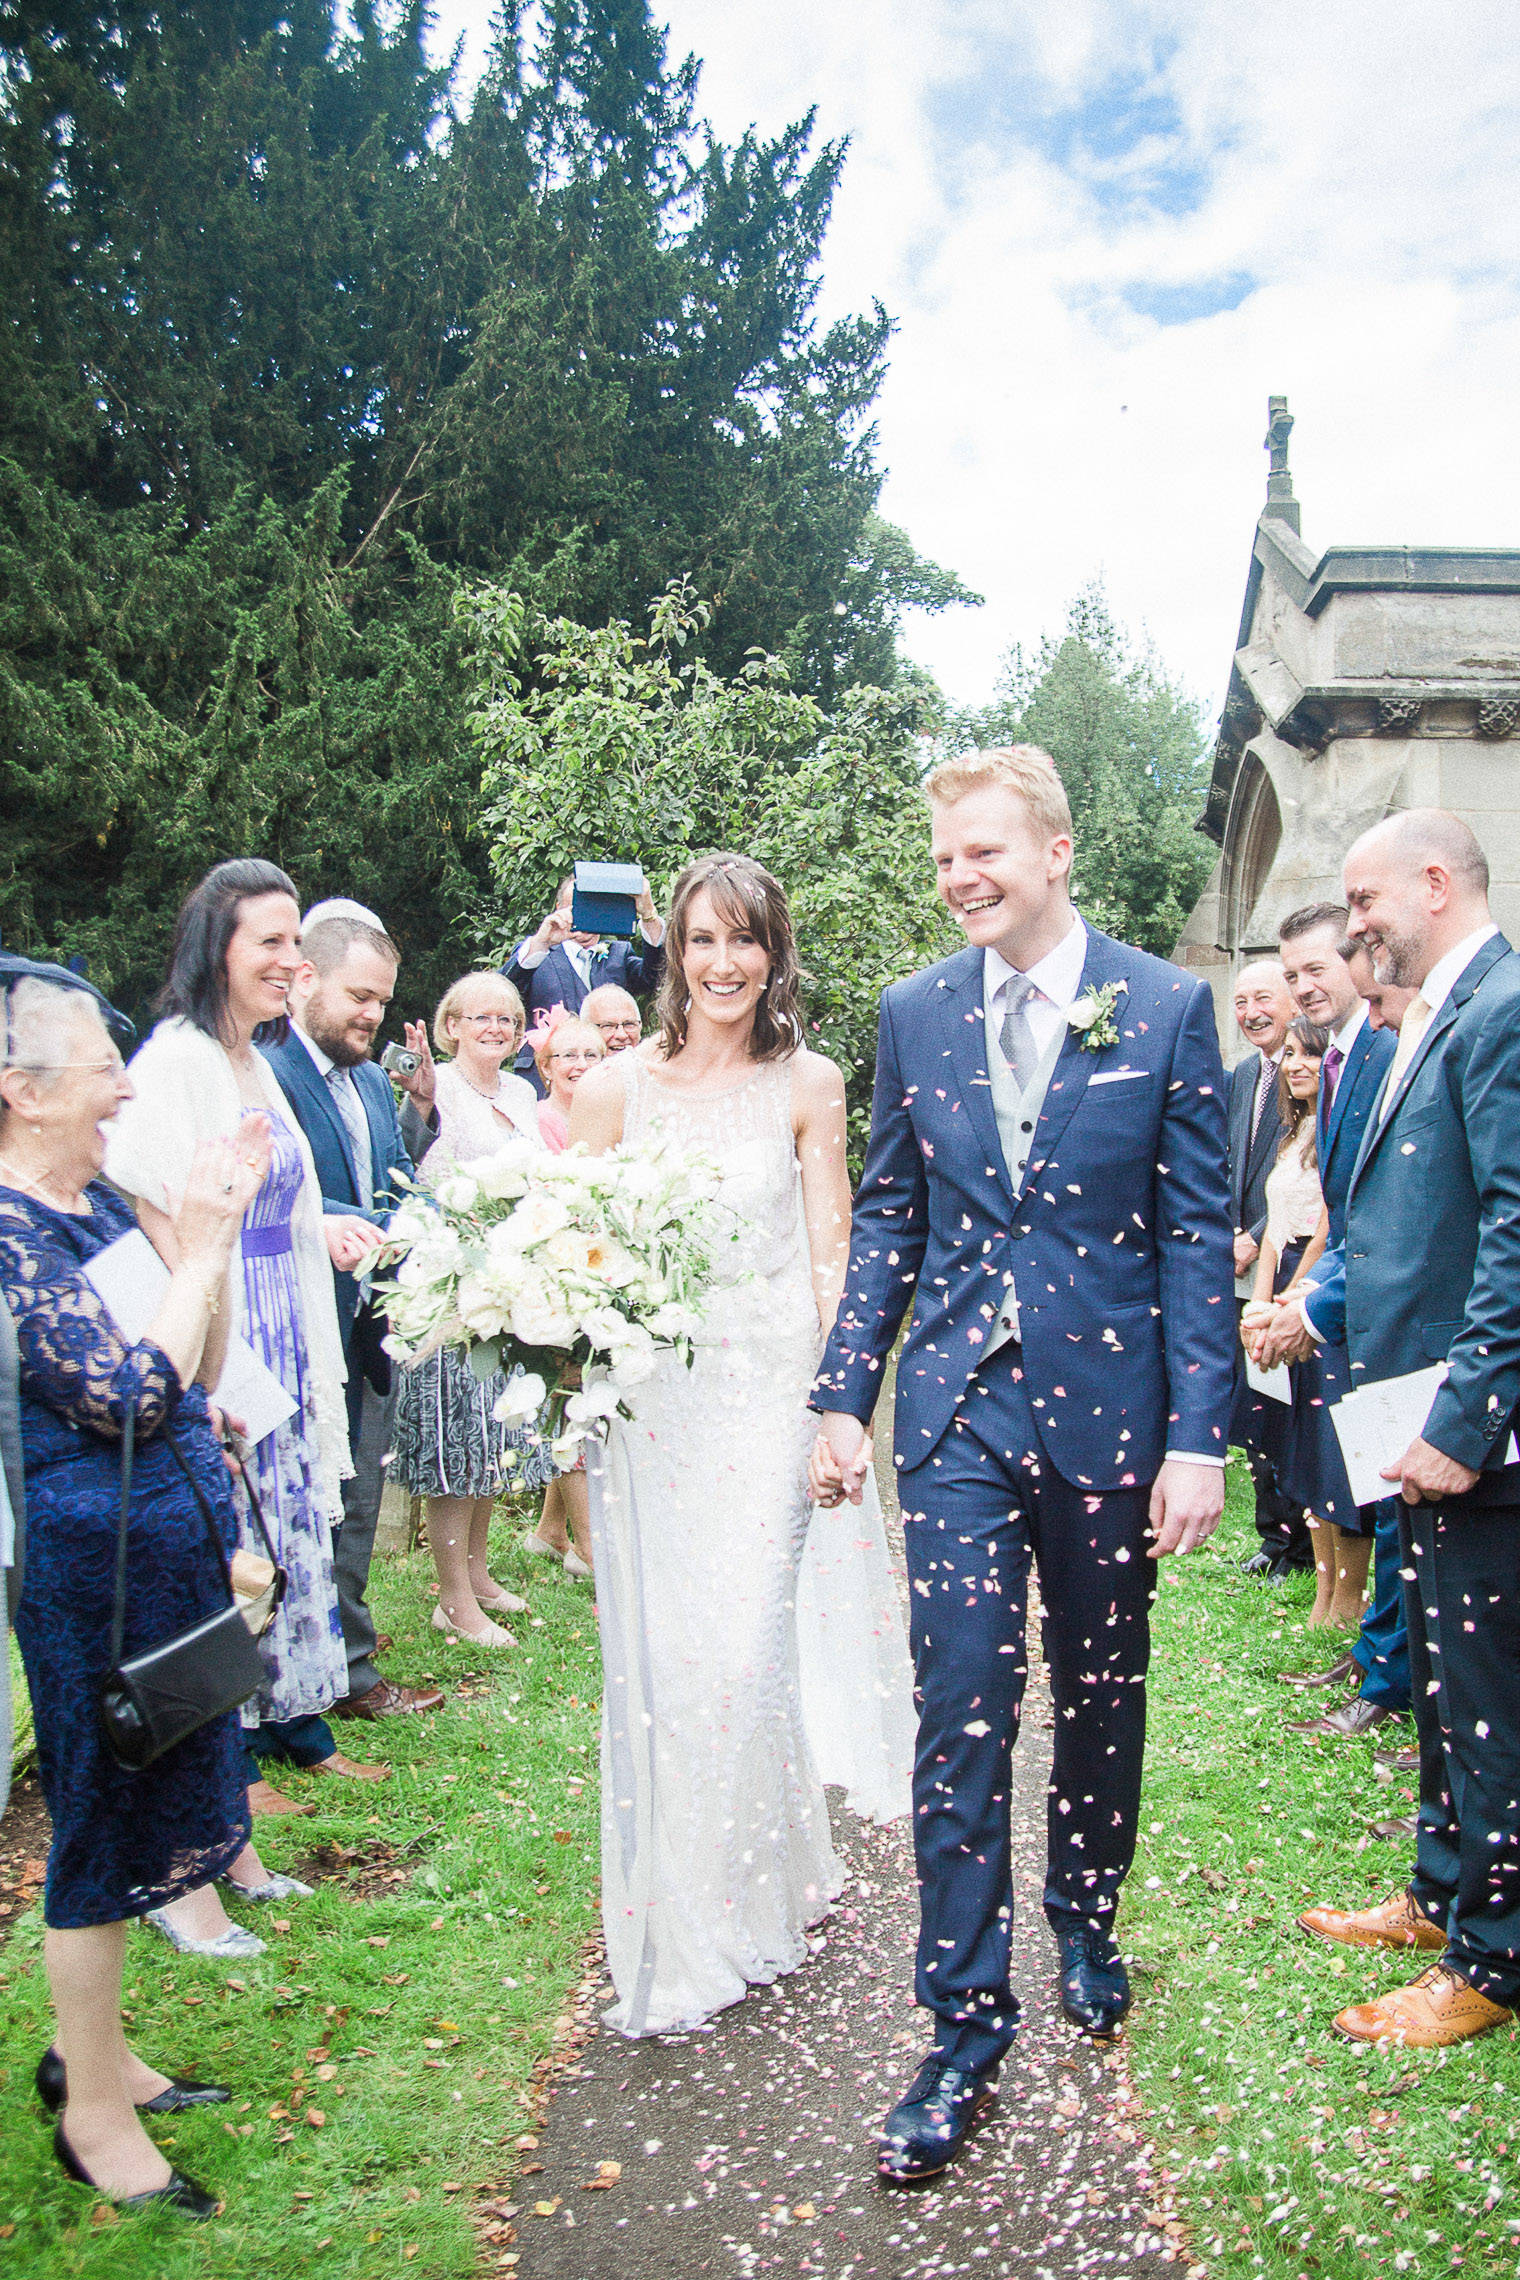 lifestyle-blogger-claire-wainwright-of-the-green-eyed-girl-shares-her-wedding-28